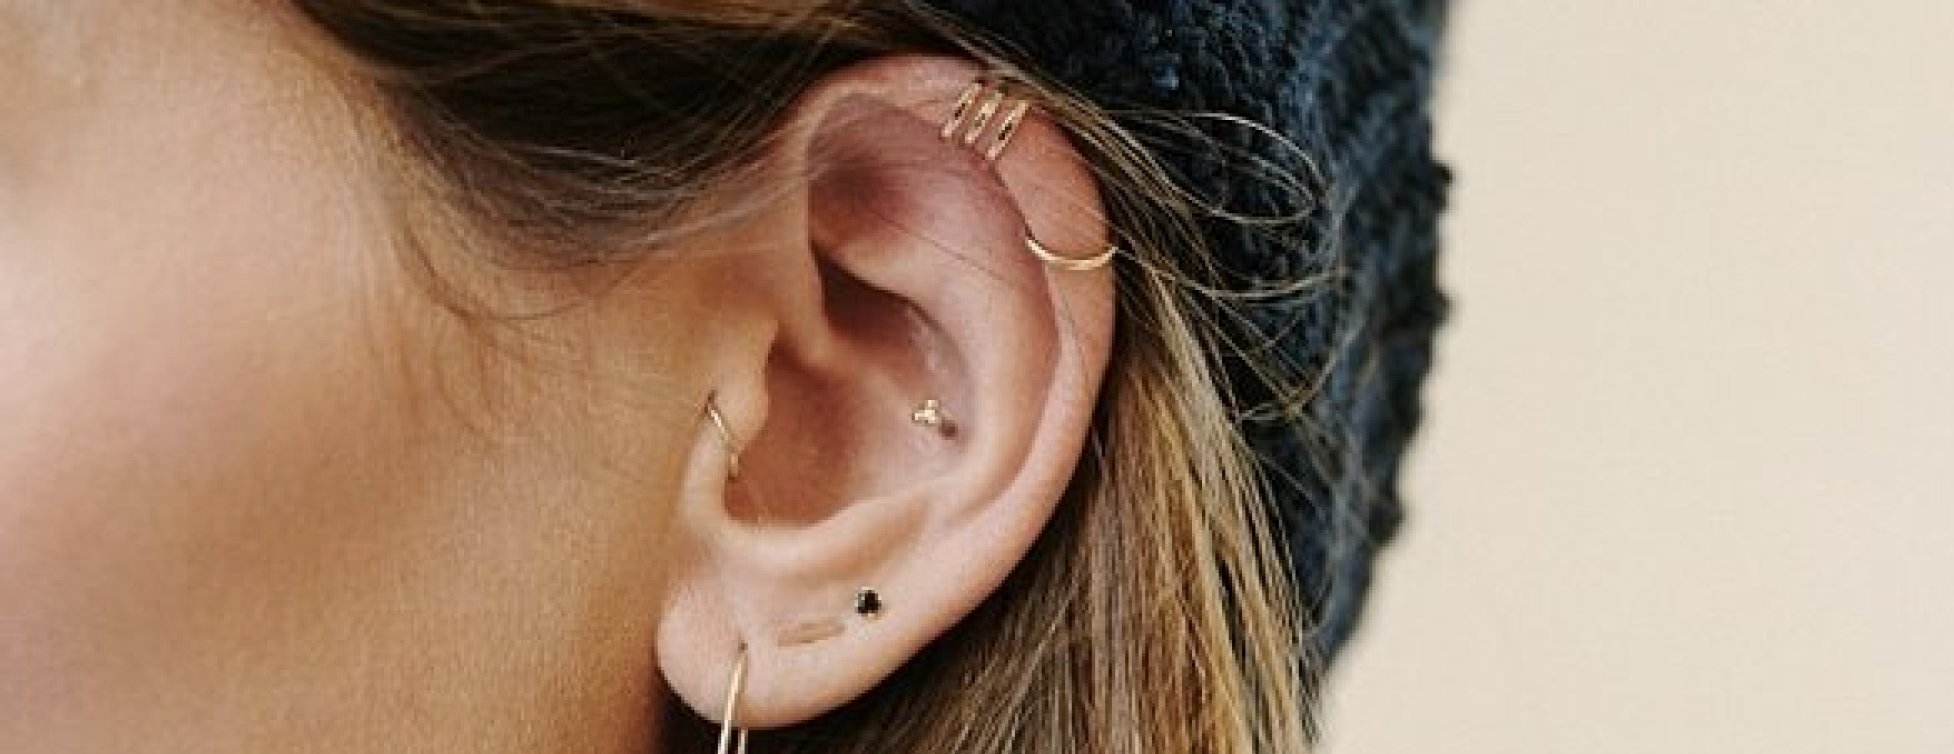 Medically supervised piercing